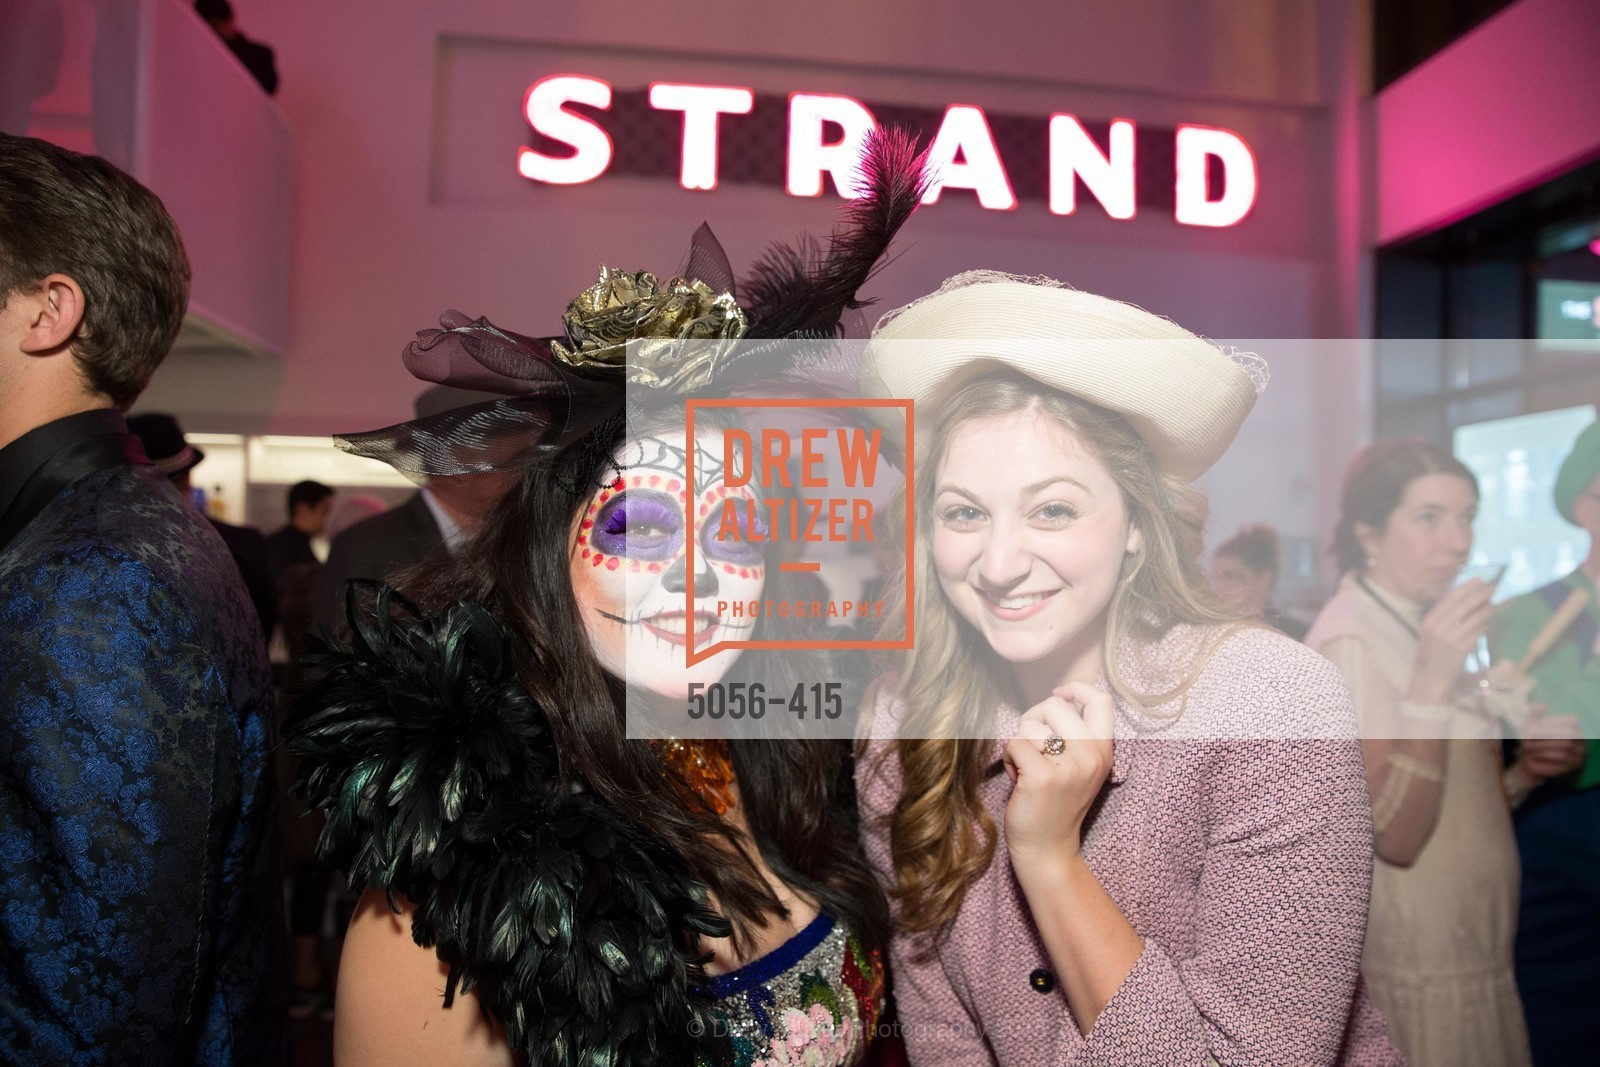 Norea Kang, Julie Adamo, SPOOKED AT THE STRAND Presented by the American Conservatory Theater, The Strand Theater. 1127 Market Street, October 26th, 2015,Drew Altizer, Drew Altizer Photography, full-service agency, private events, San Francisco photographer, photographer california